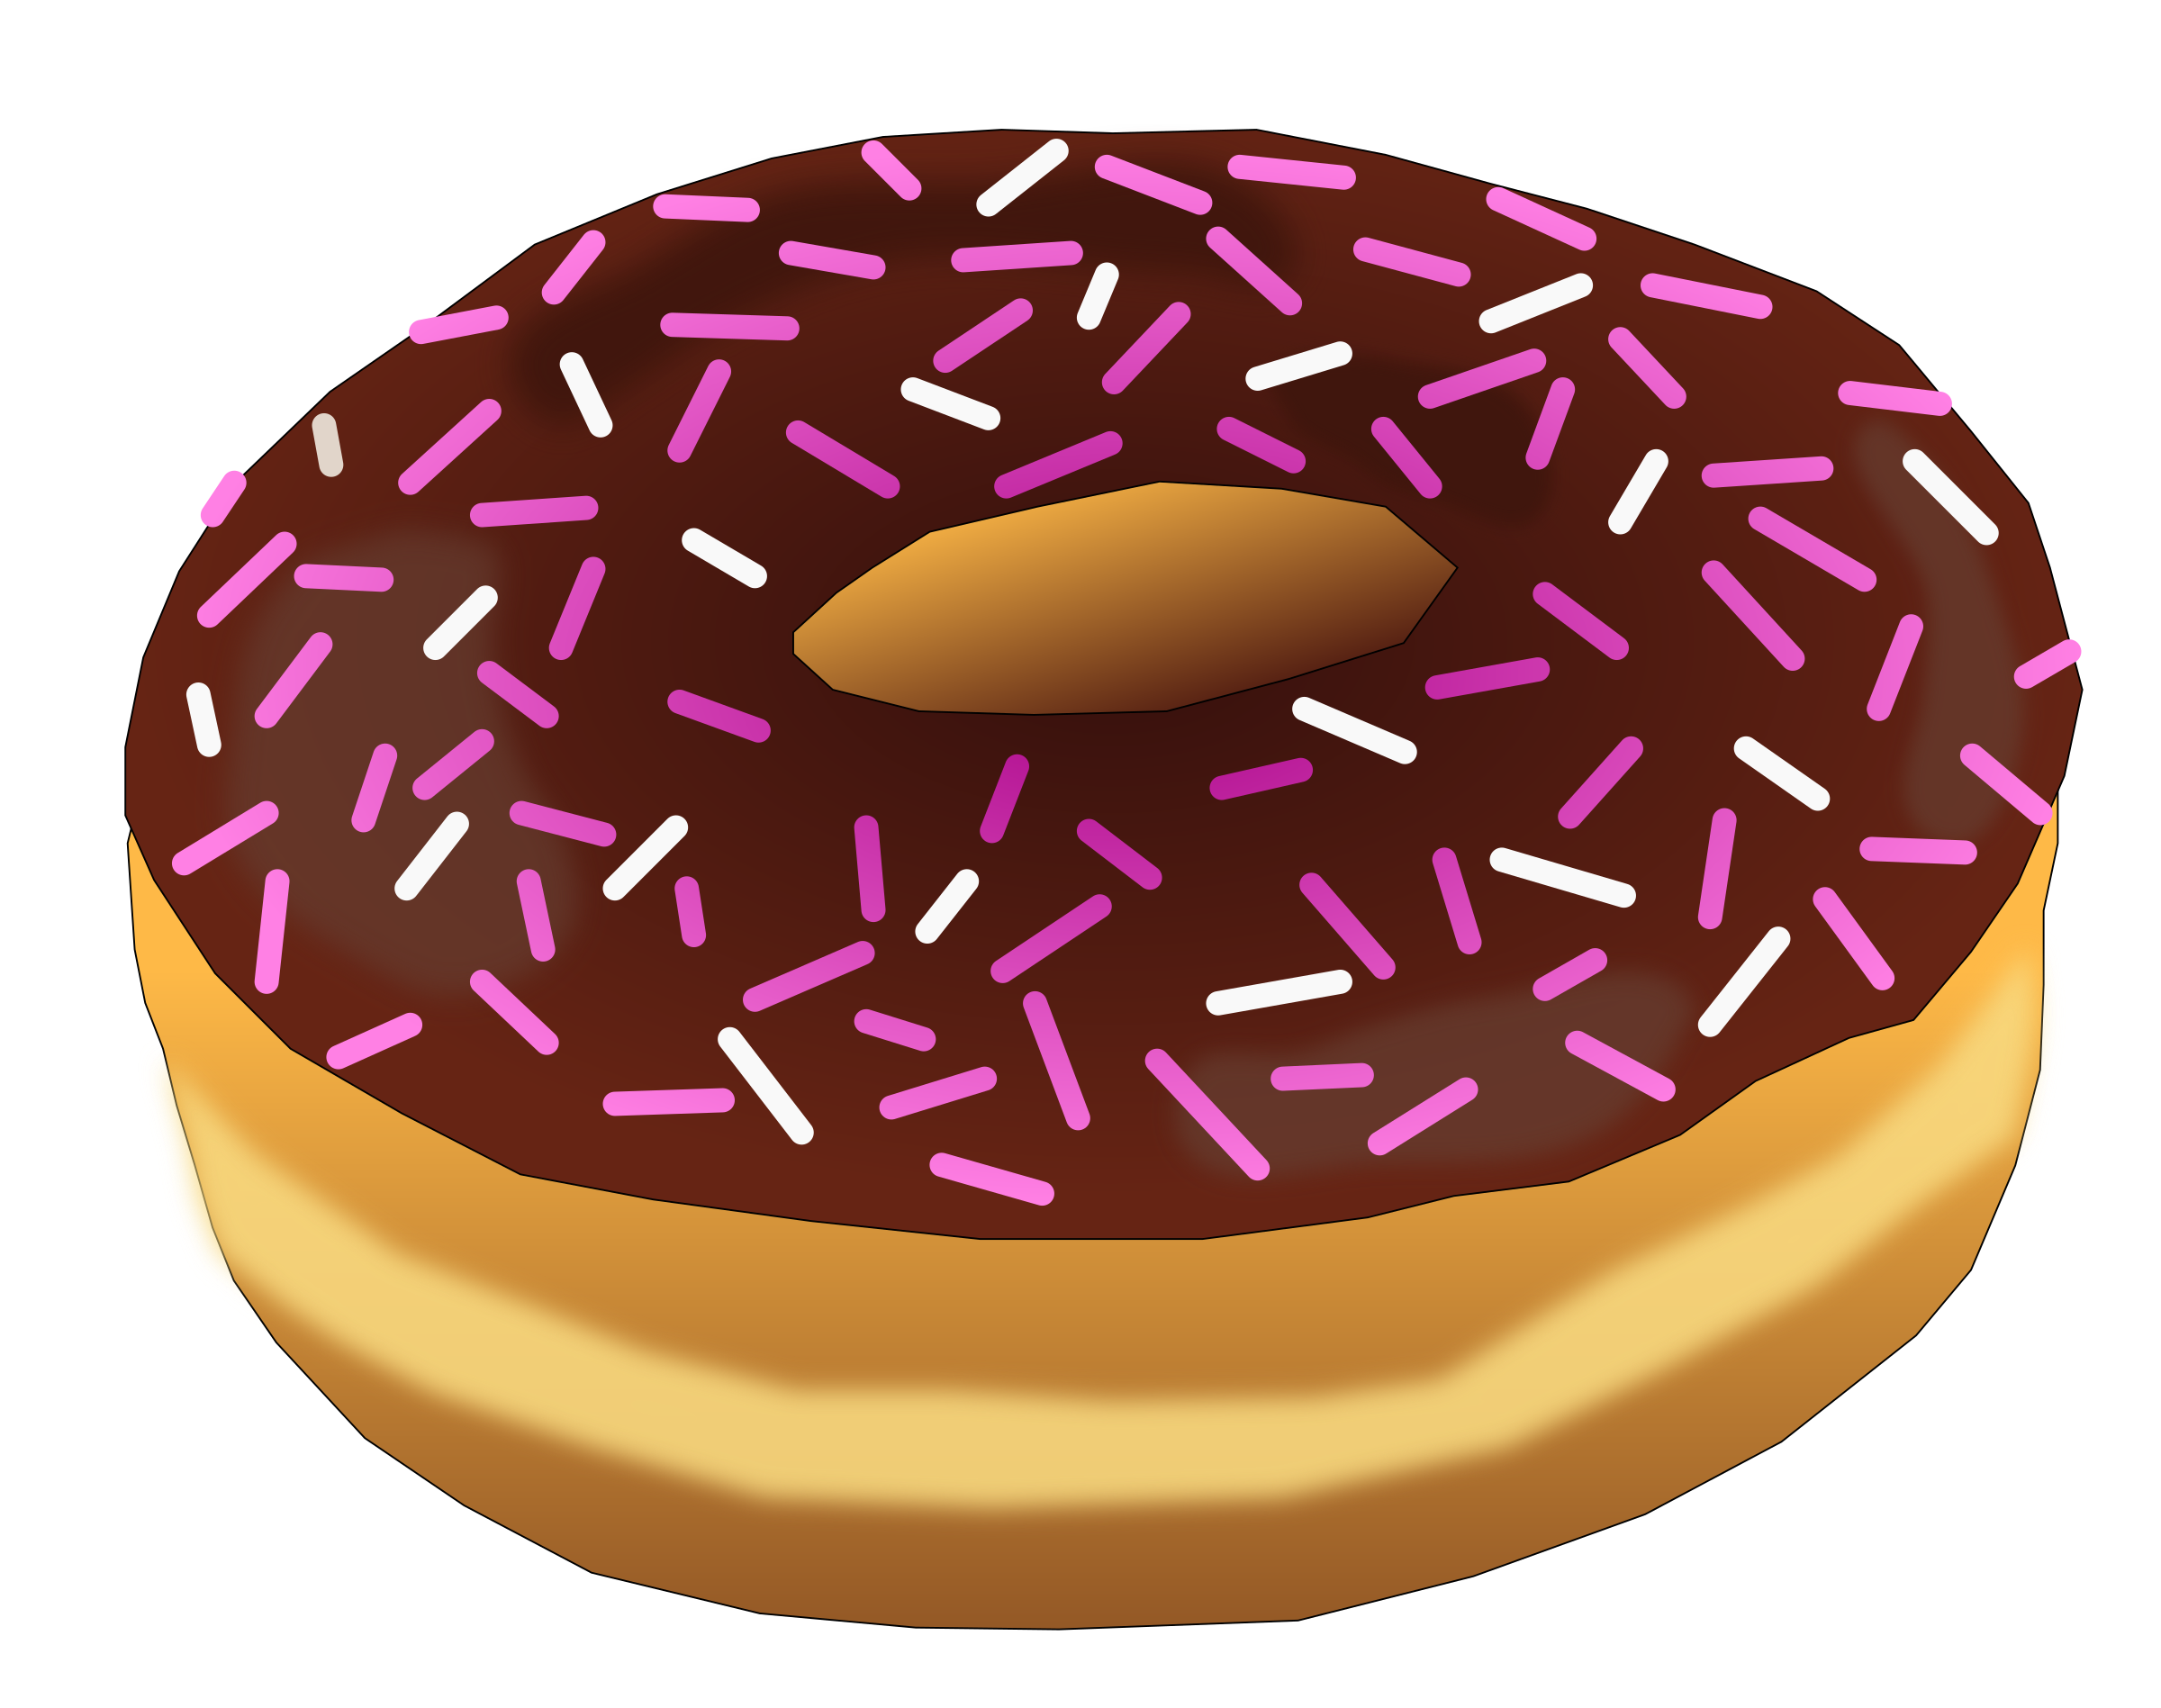 Pink Donut 2 by PinkJellyfish